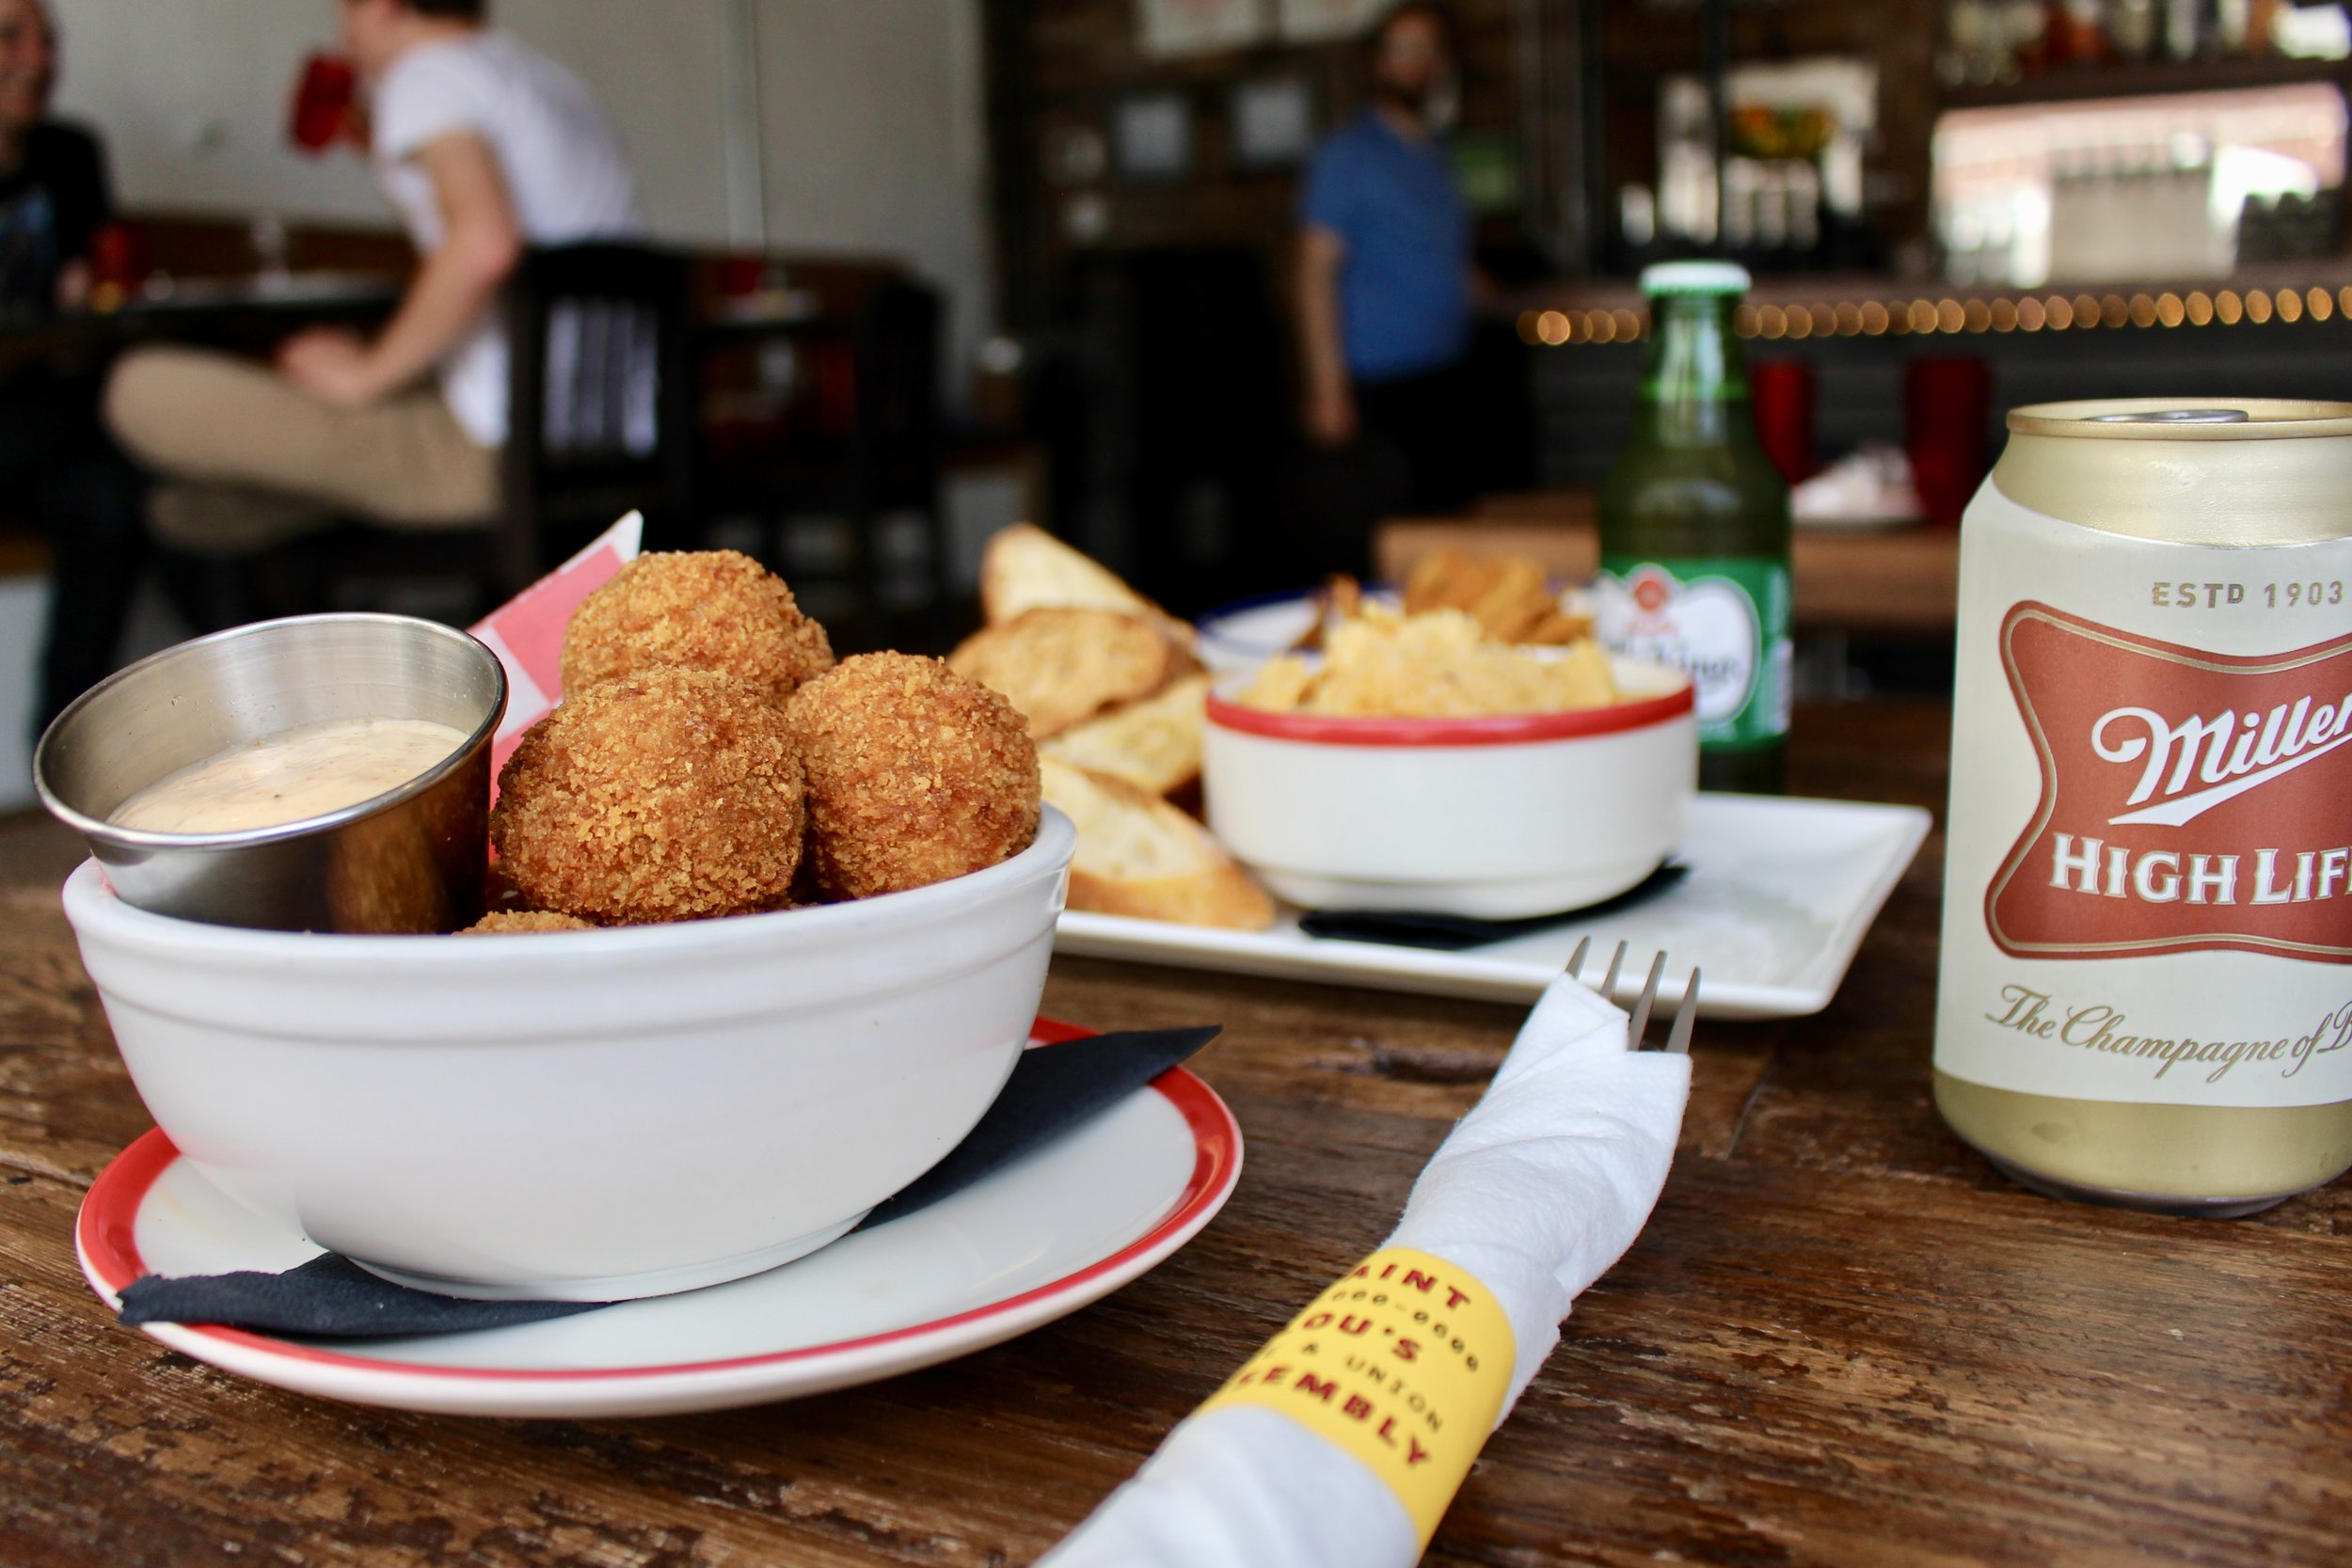 Lou's Backyard features hushpuppies with schmaltzy Tabasco sauce.